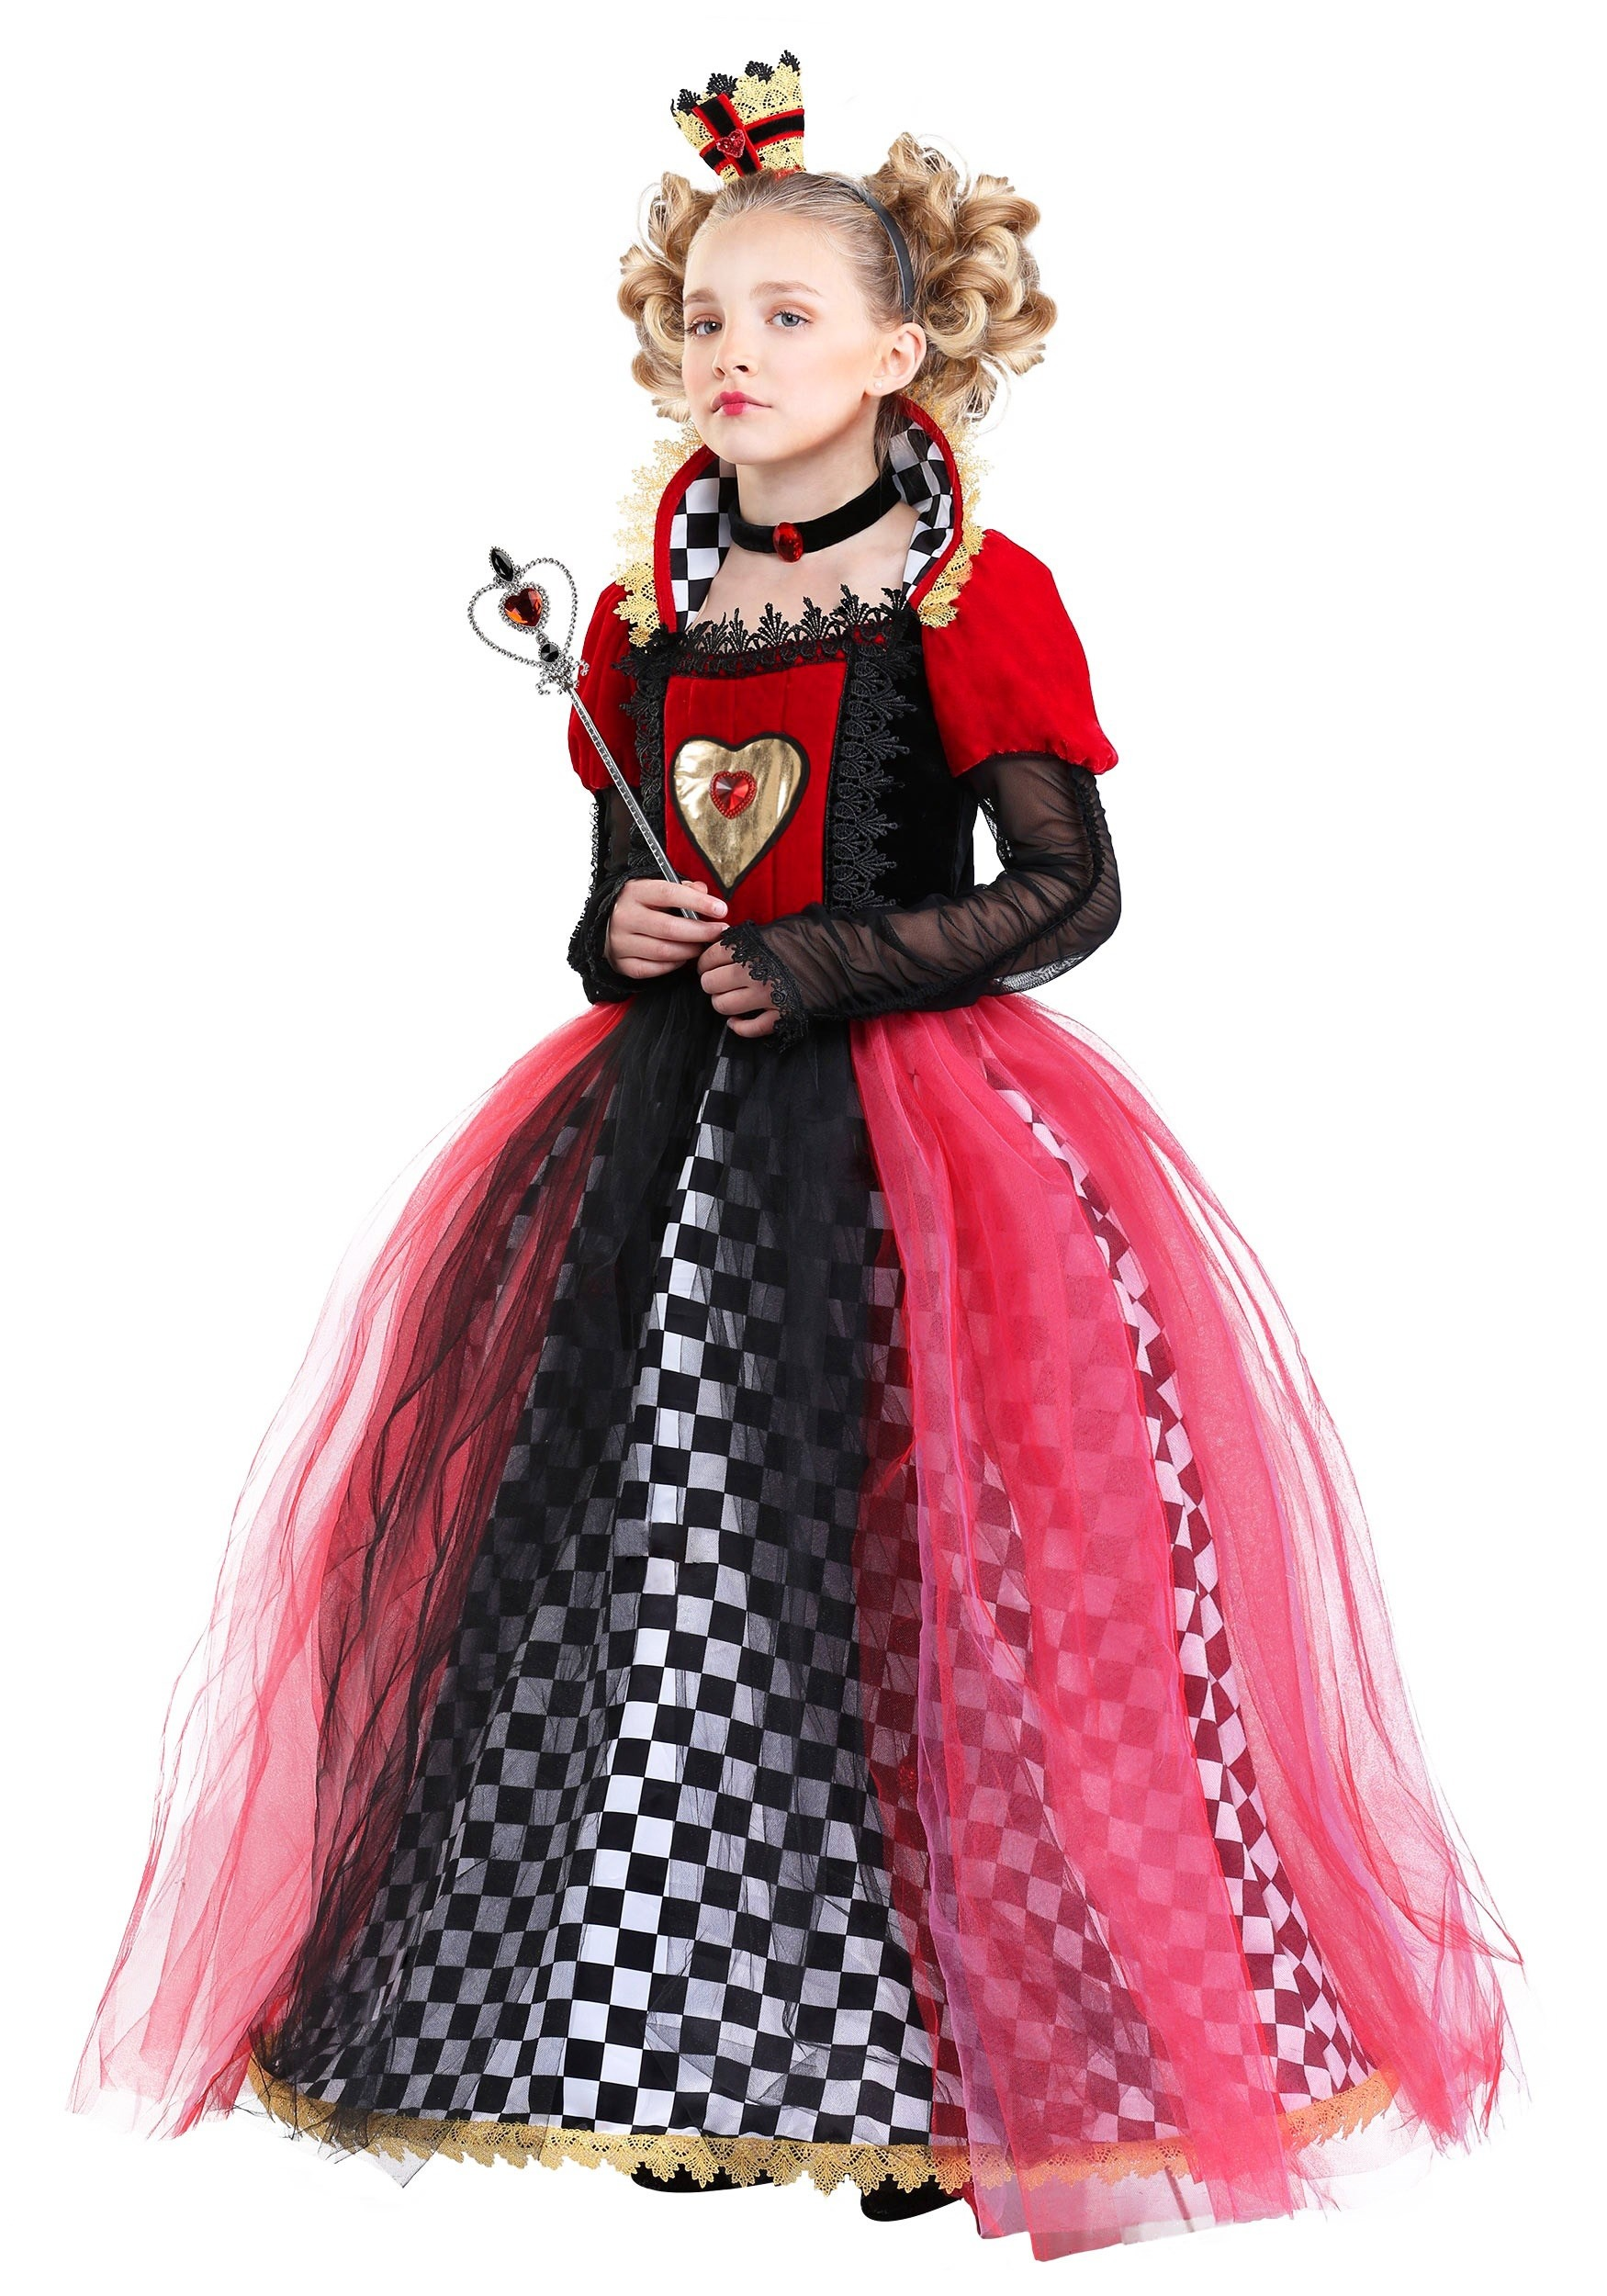 bdb70221d Ravishing Queen of Hearts Costume for Girl s